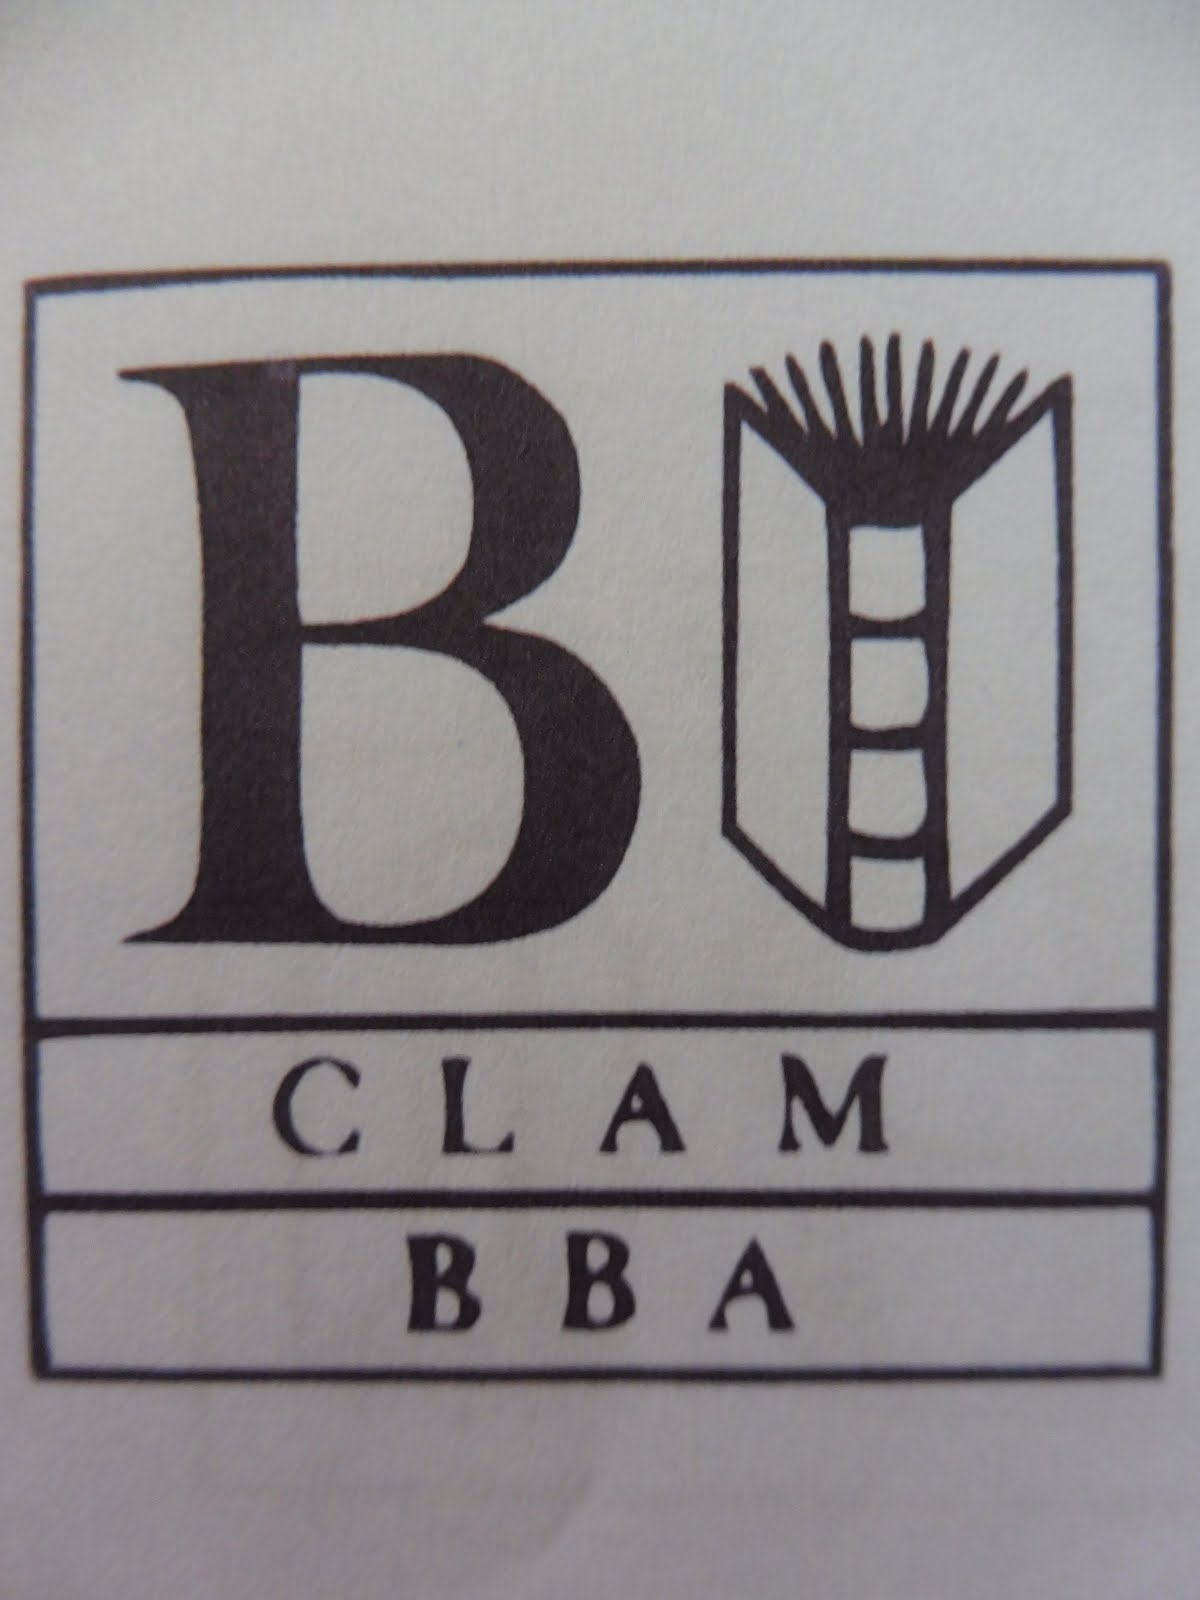 CLAM-BBA